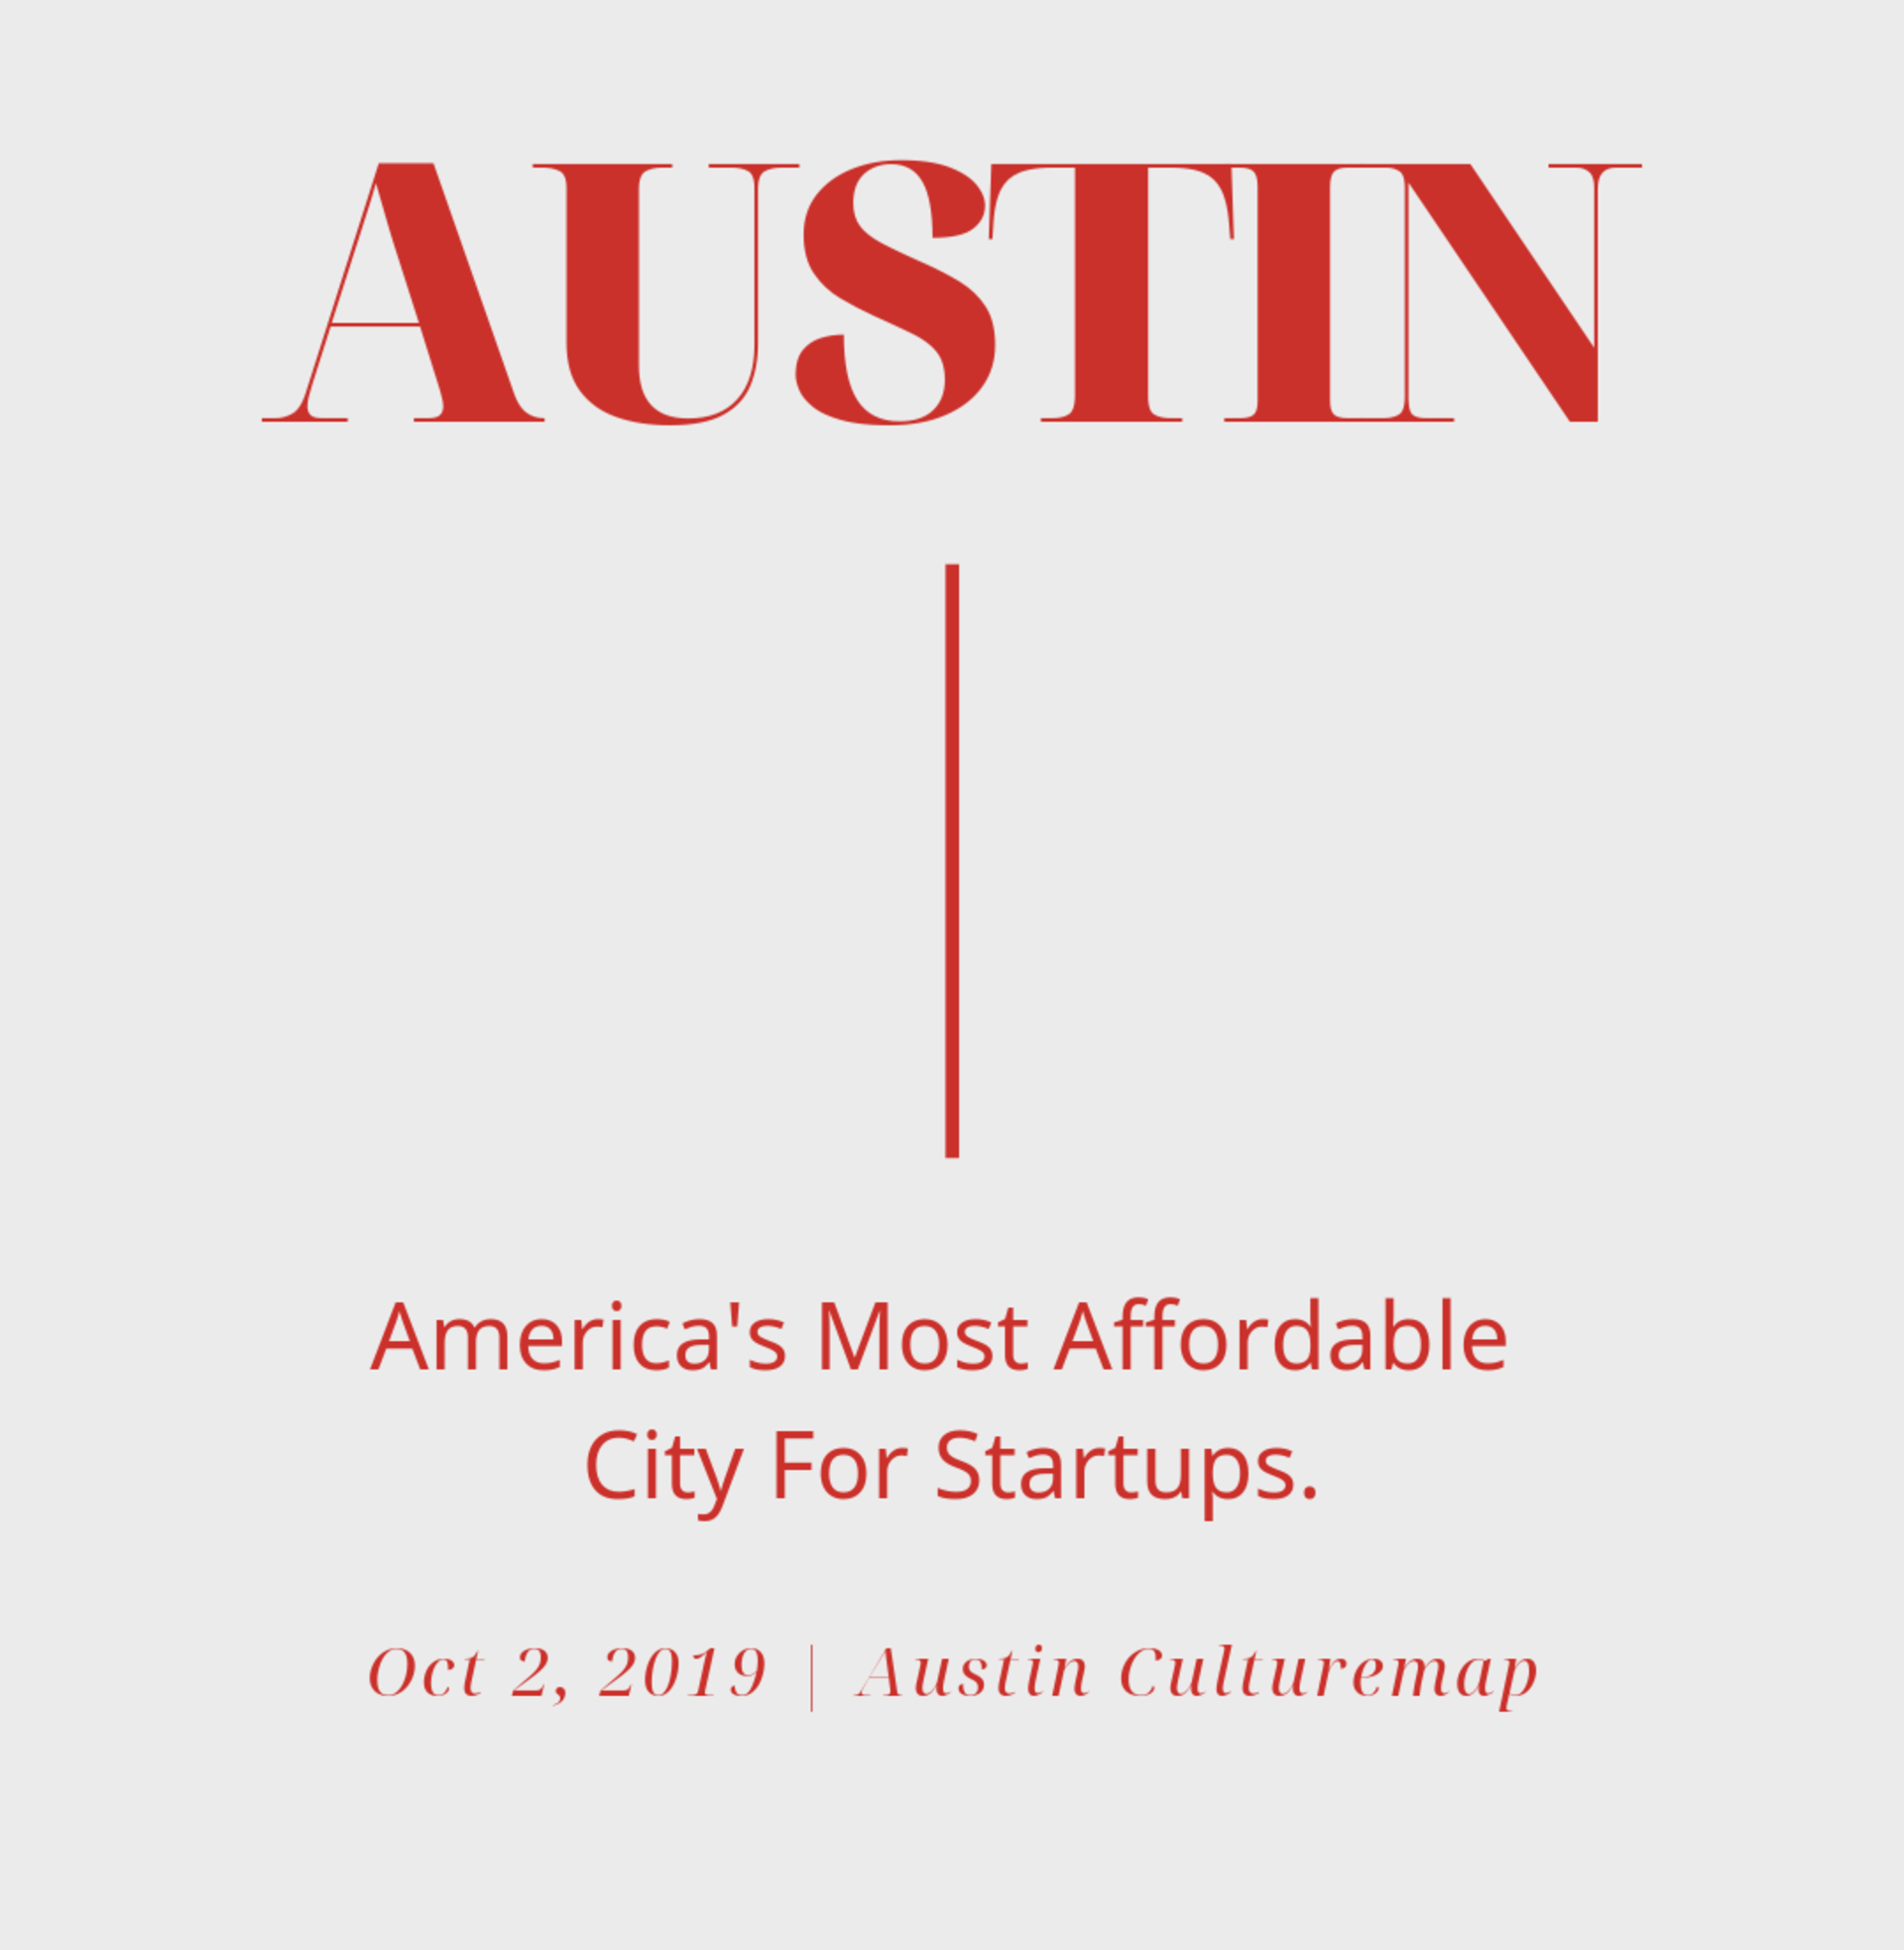 Another Reason Austin Is Such a Great City